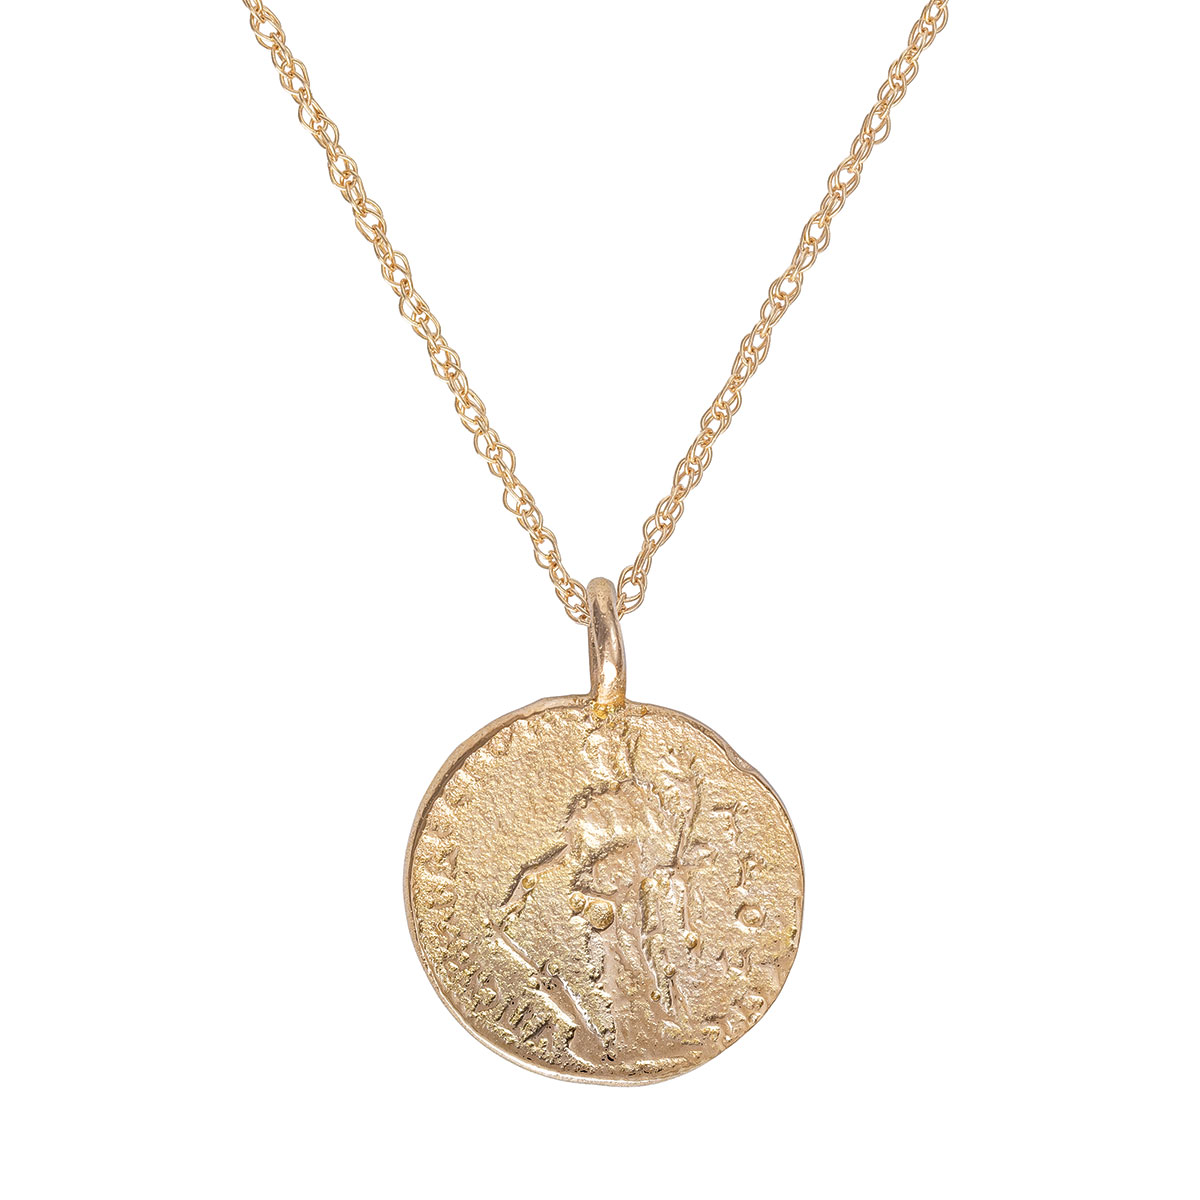 Chupi-Solid-Gold-Necklace-Ancient-Zodiac-Star-Sign-Virgo-1 (1)